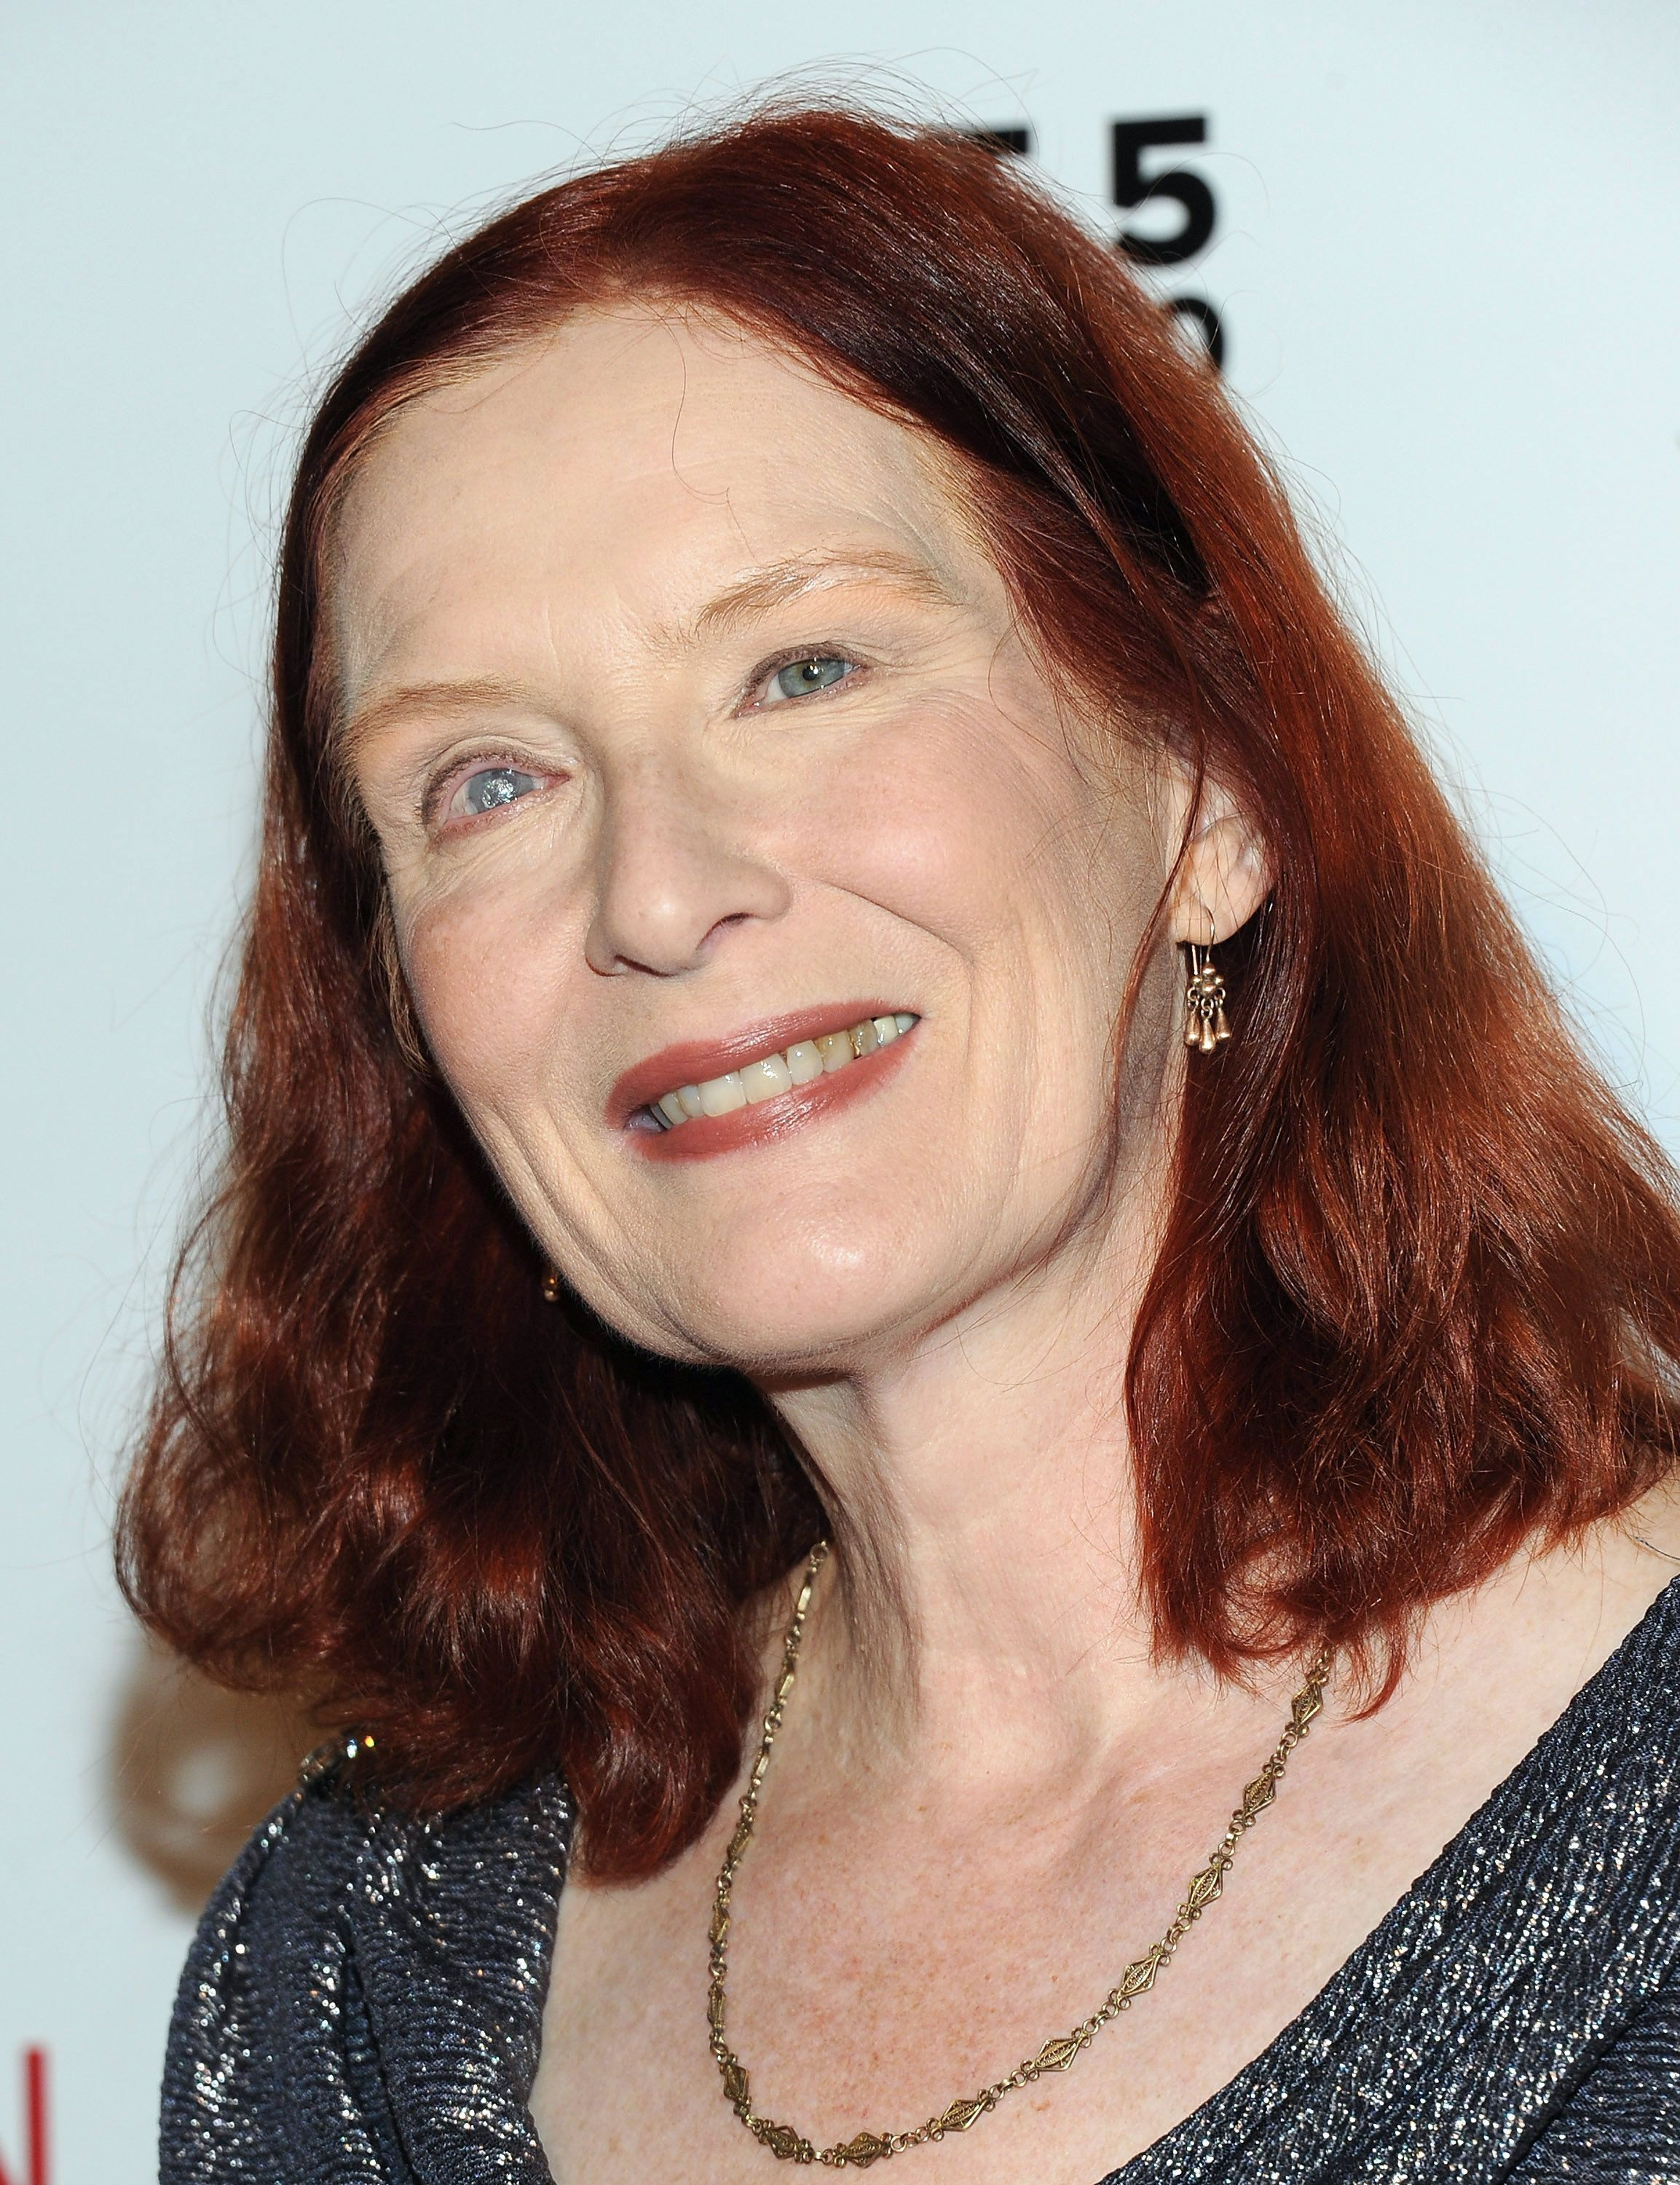 Frances Conroy naked (71 photos), Tits, Cleavage, Feet, butt 2019